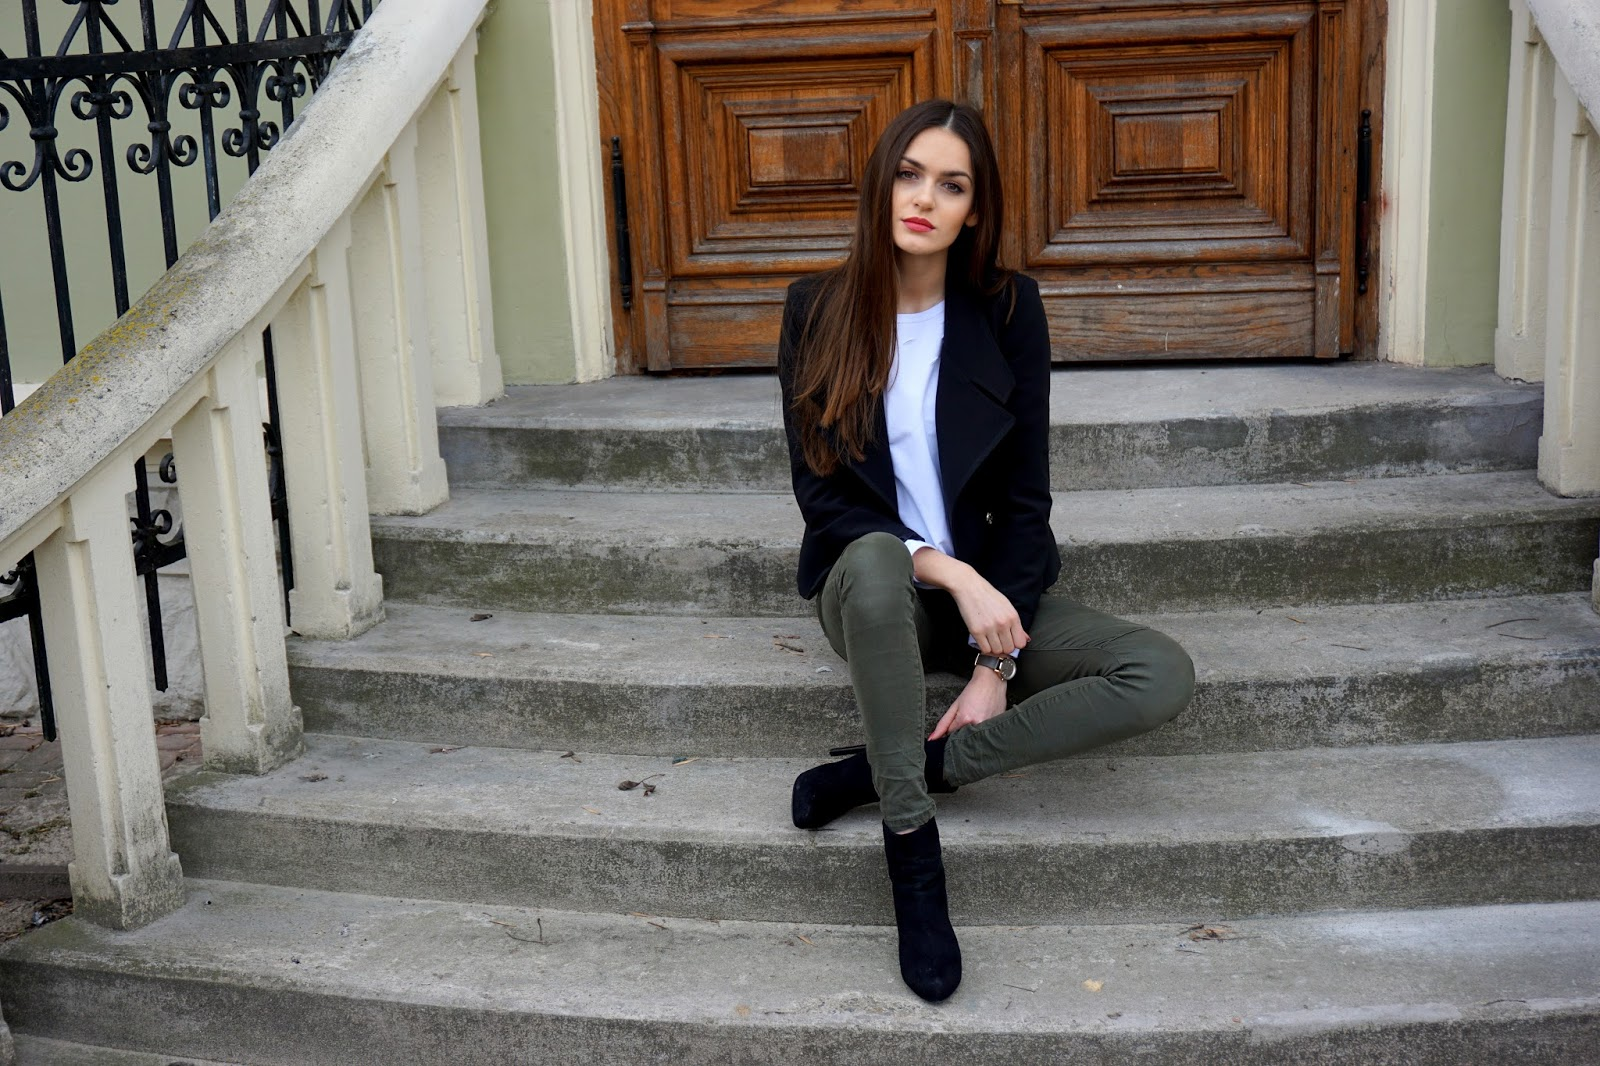 khaki and black outfit